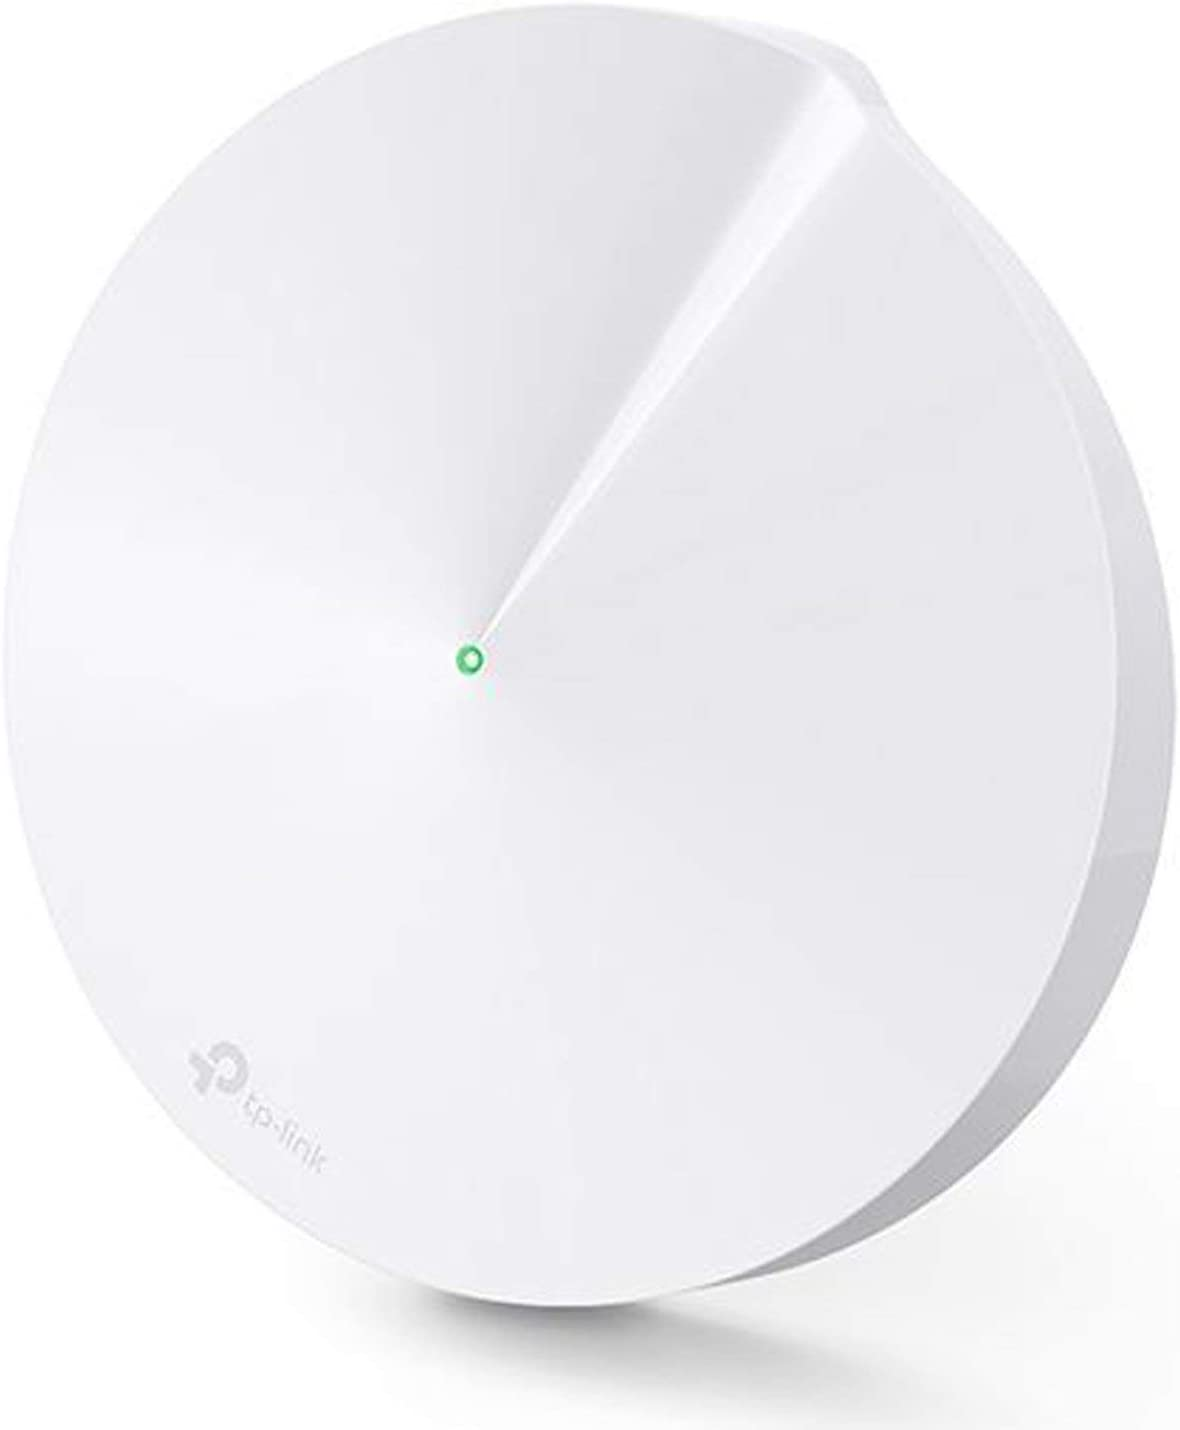 TP-Link Deco Max 69% OFF M5 Wi-Fi System Pack Replacement – Max 66% OFF Single Router